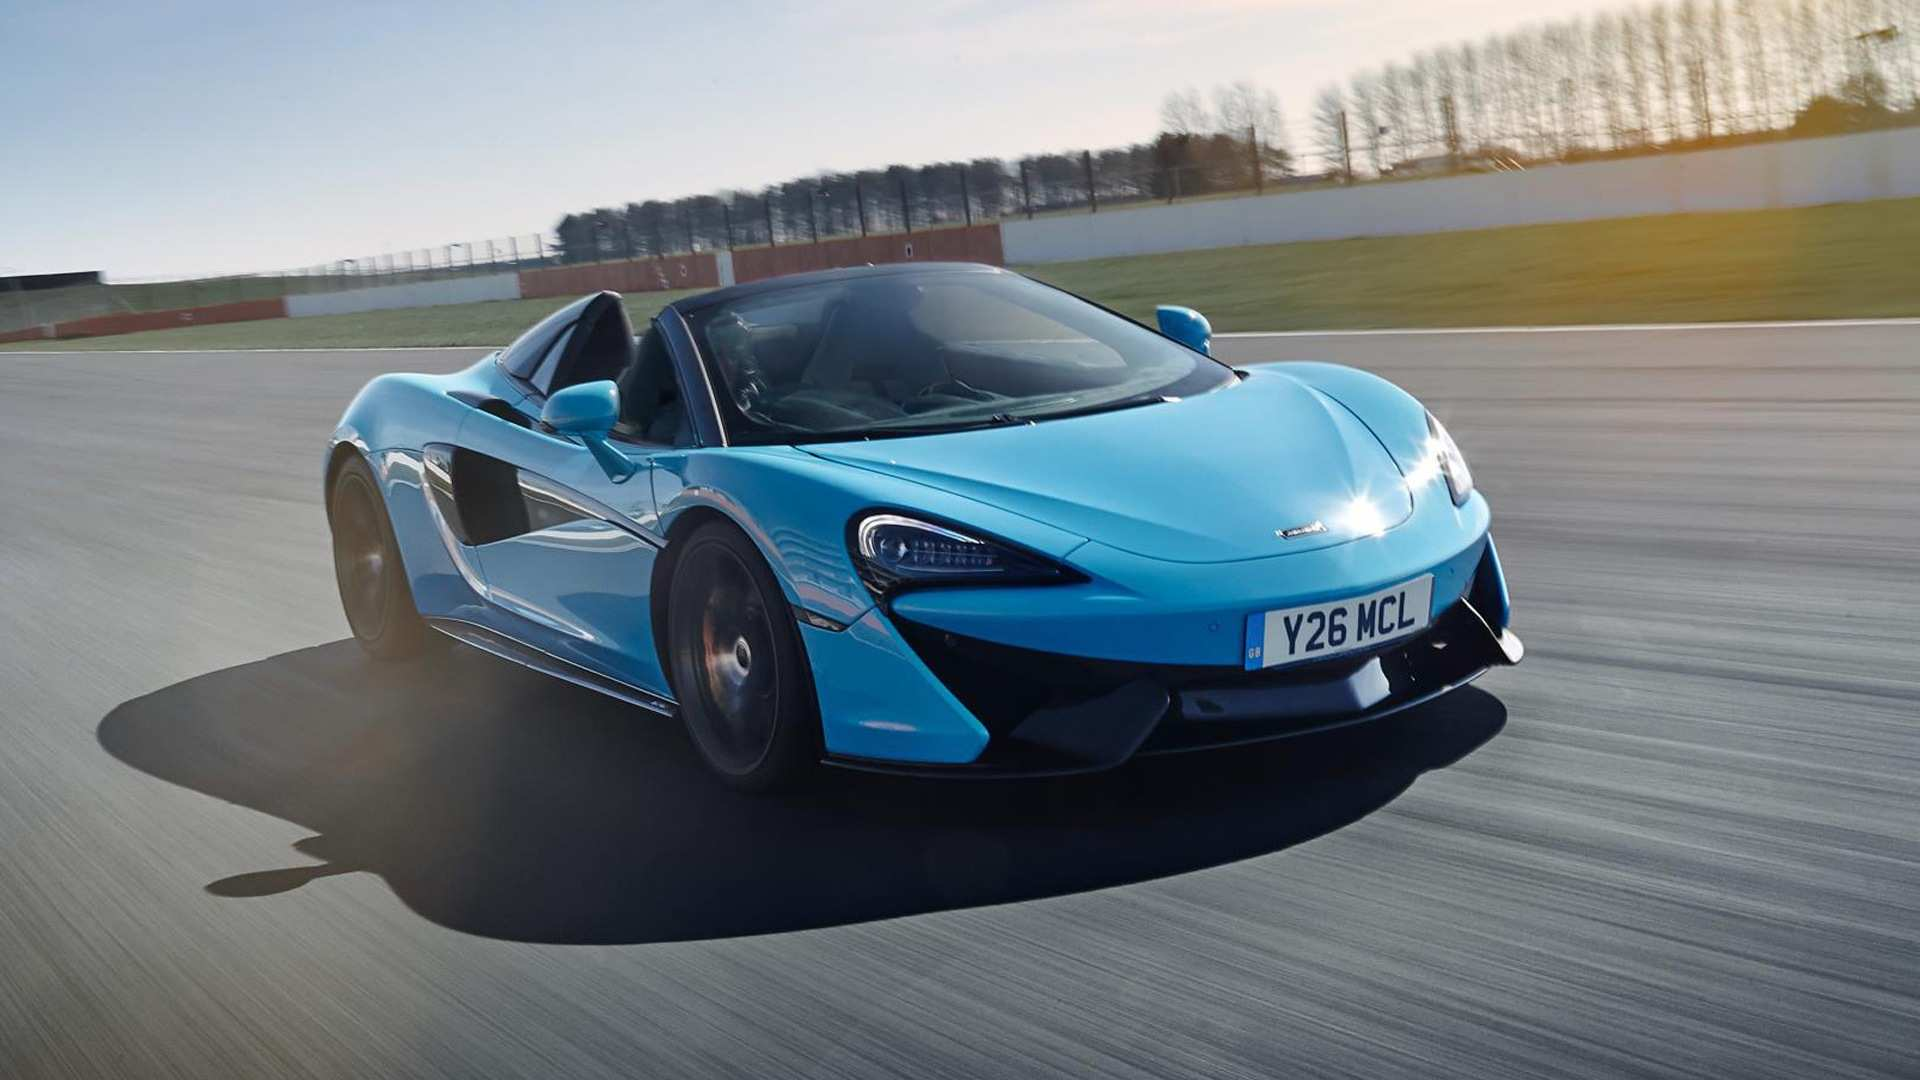 44 The Best 2019 Mclaren 570S Spider Price And Review